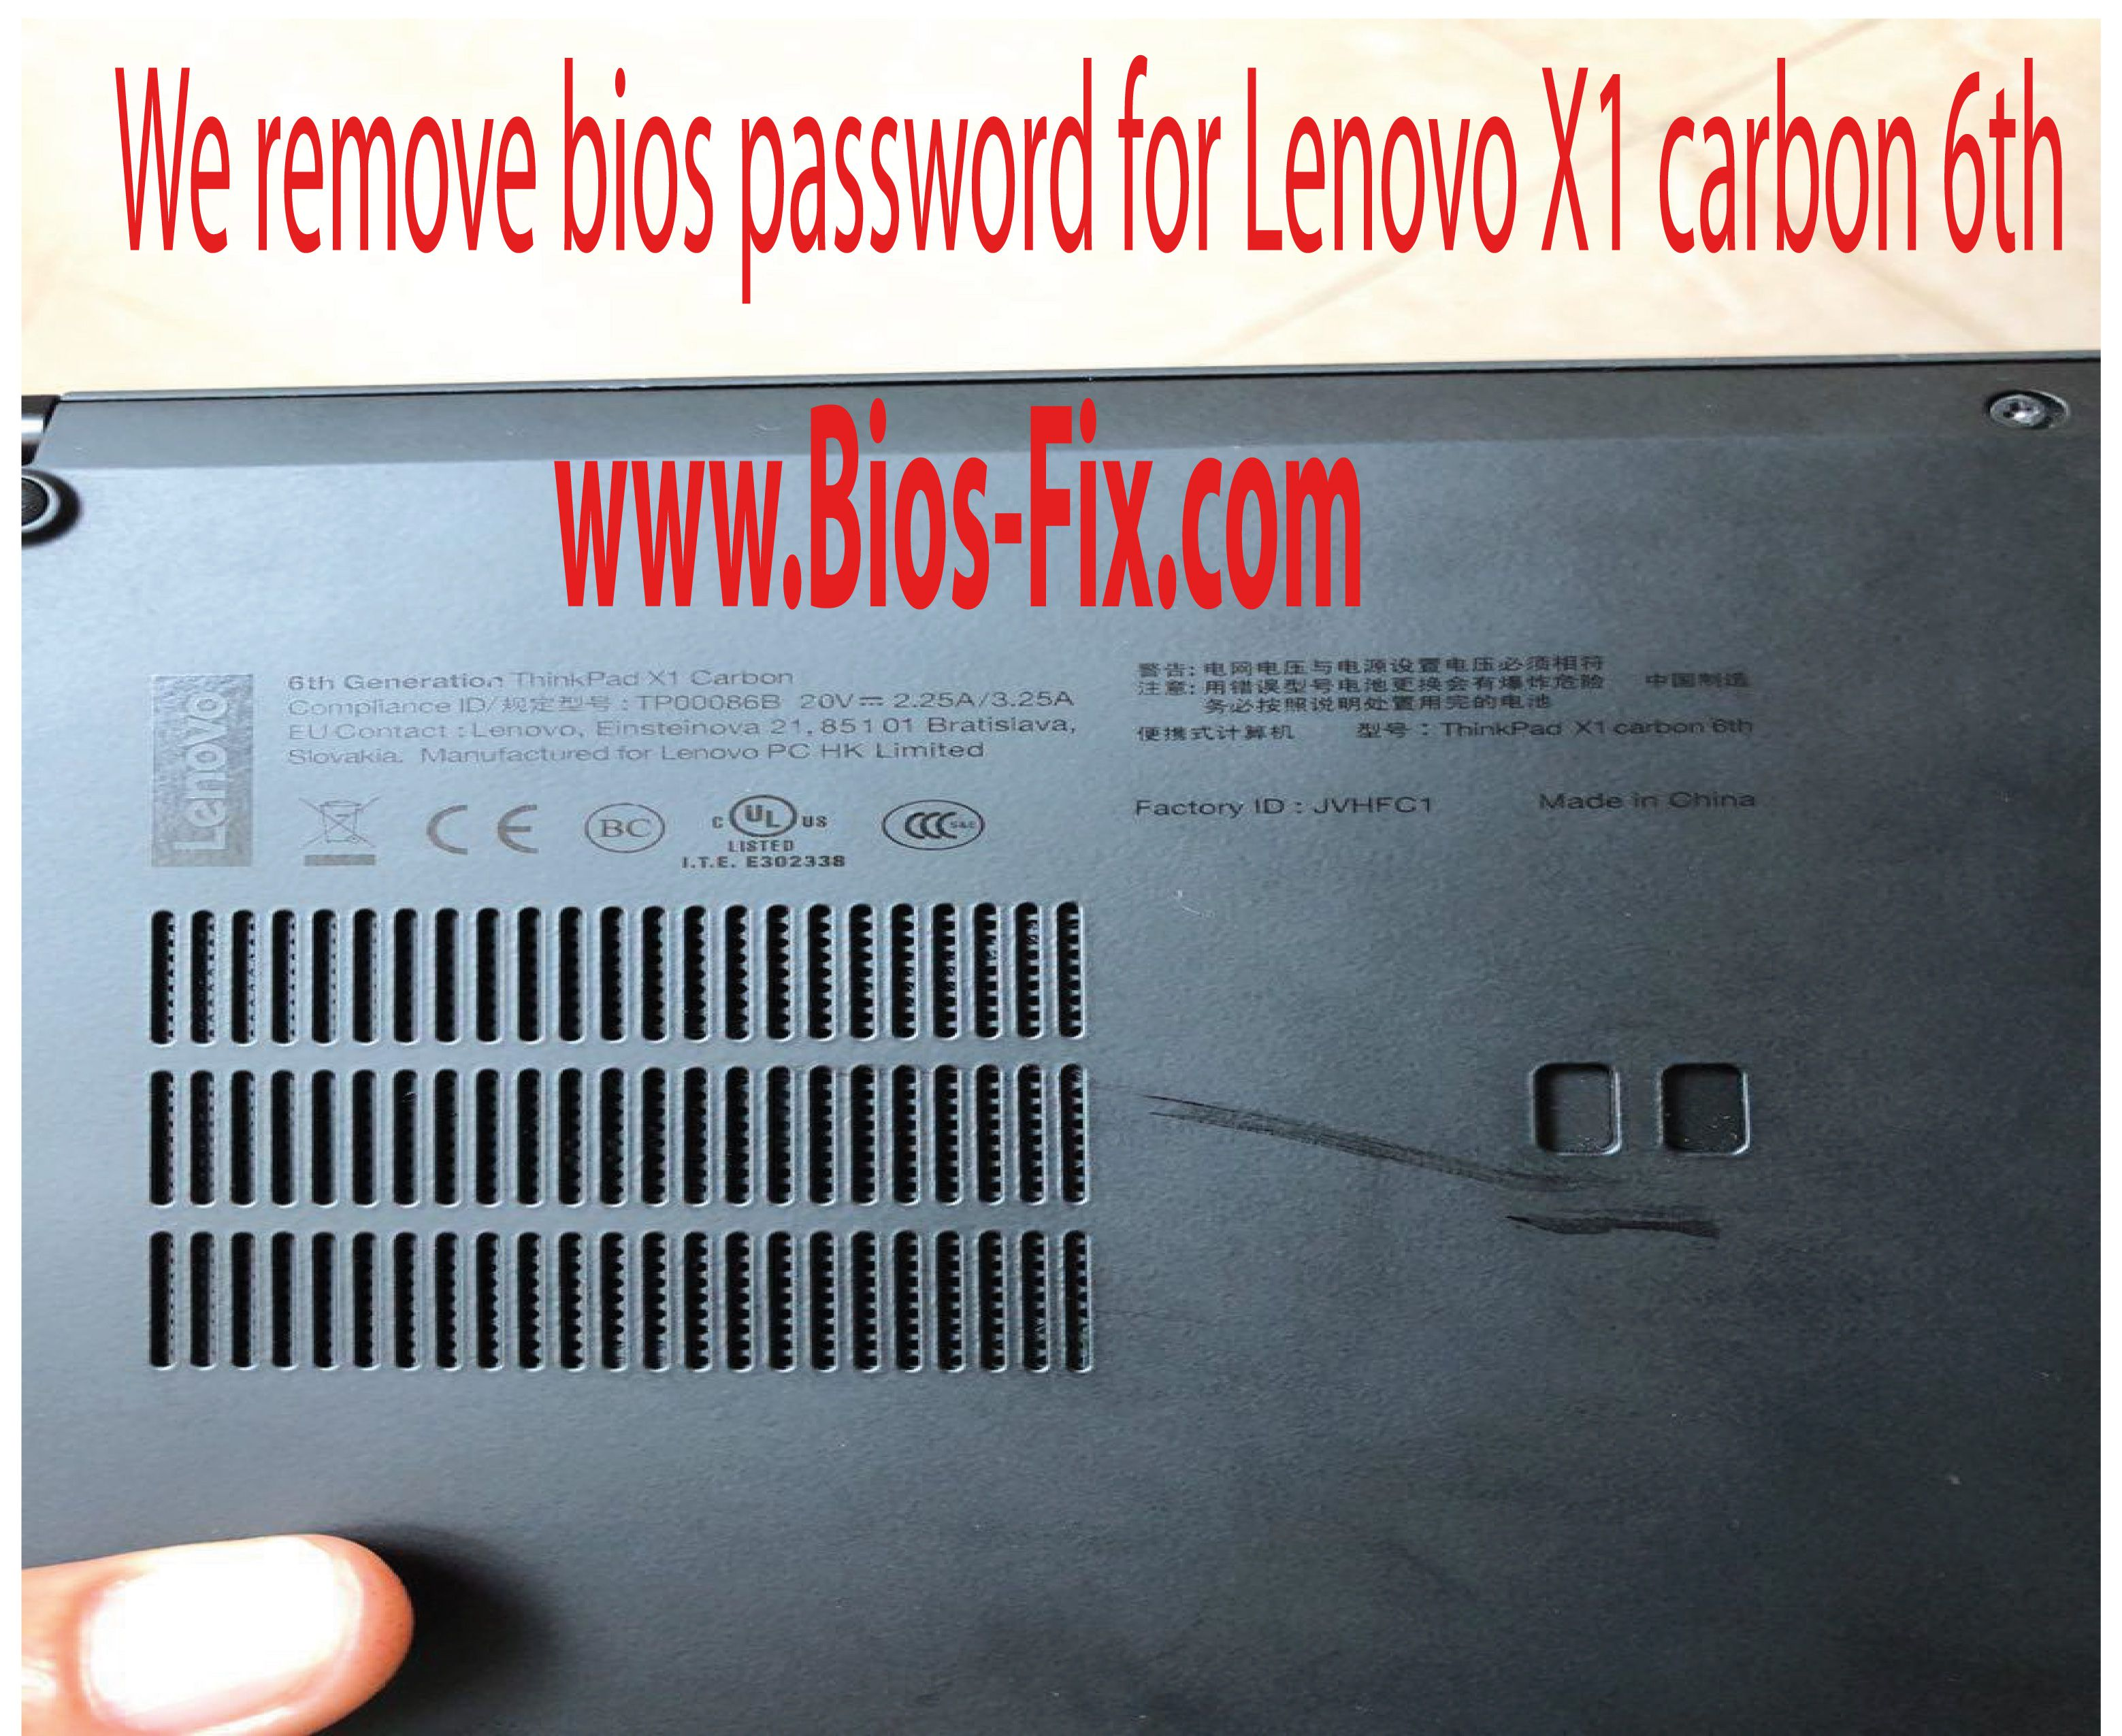 reset-bios-password-for-Lenovo-X1-carbon-6th.jpg